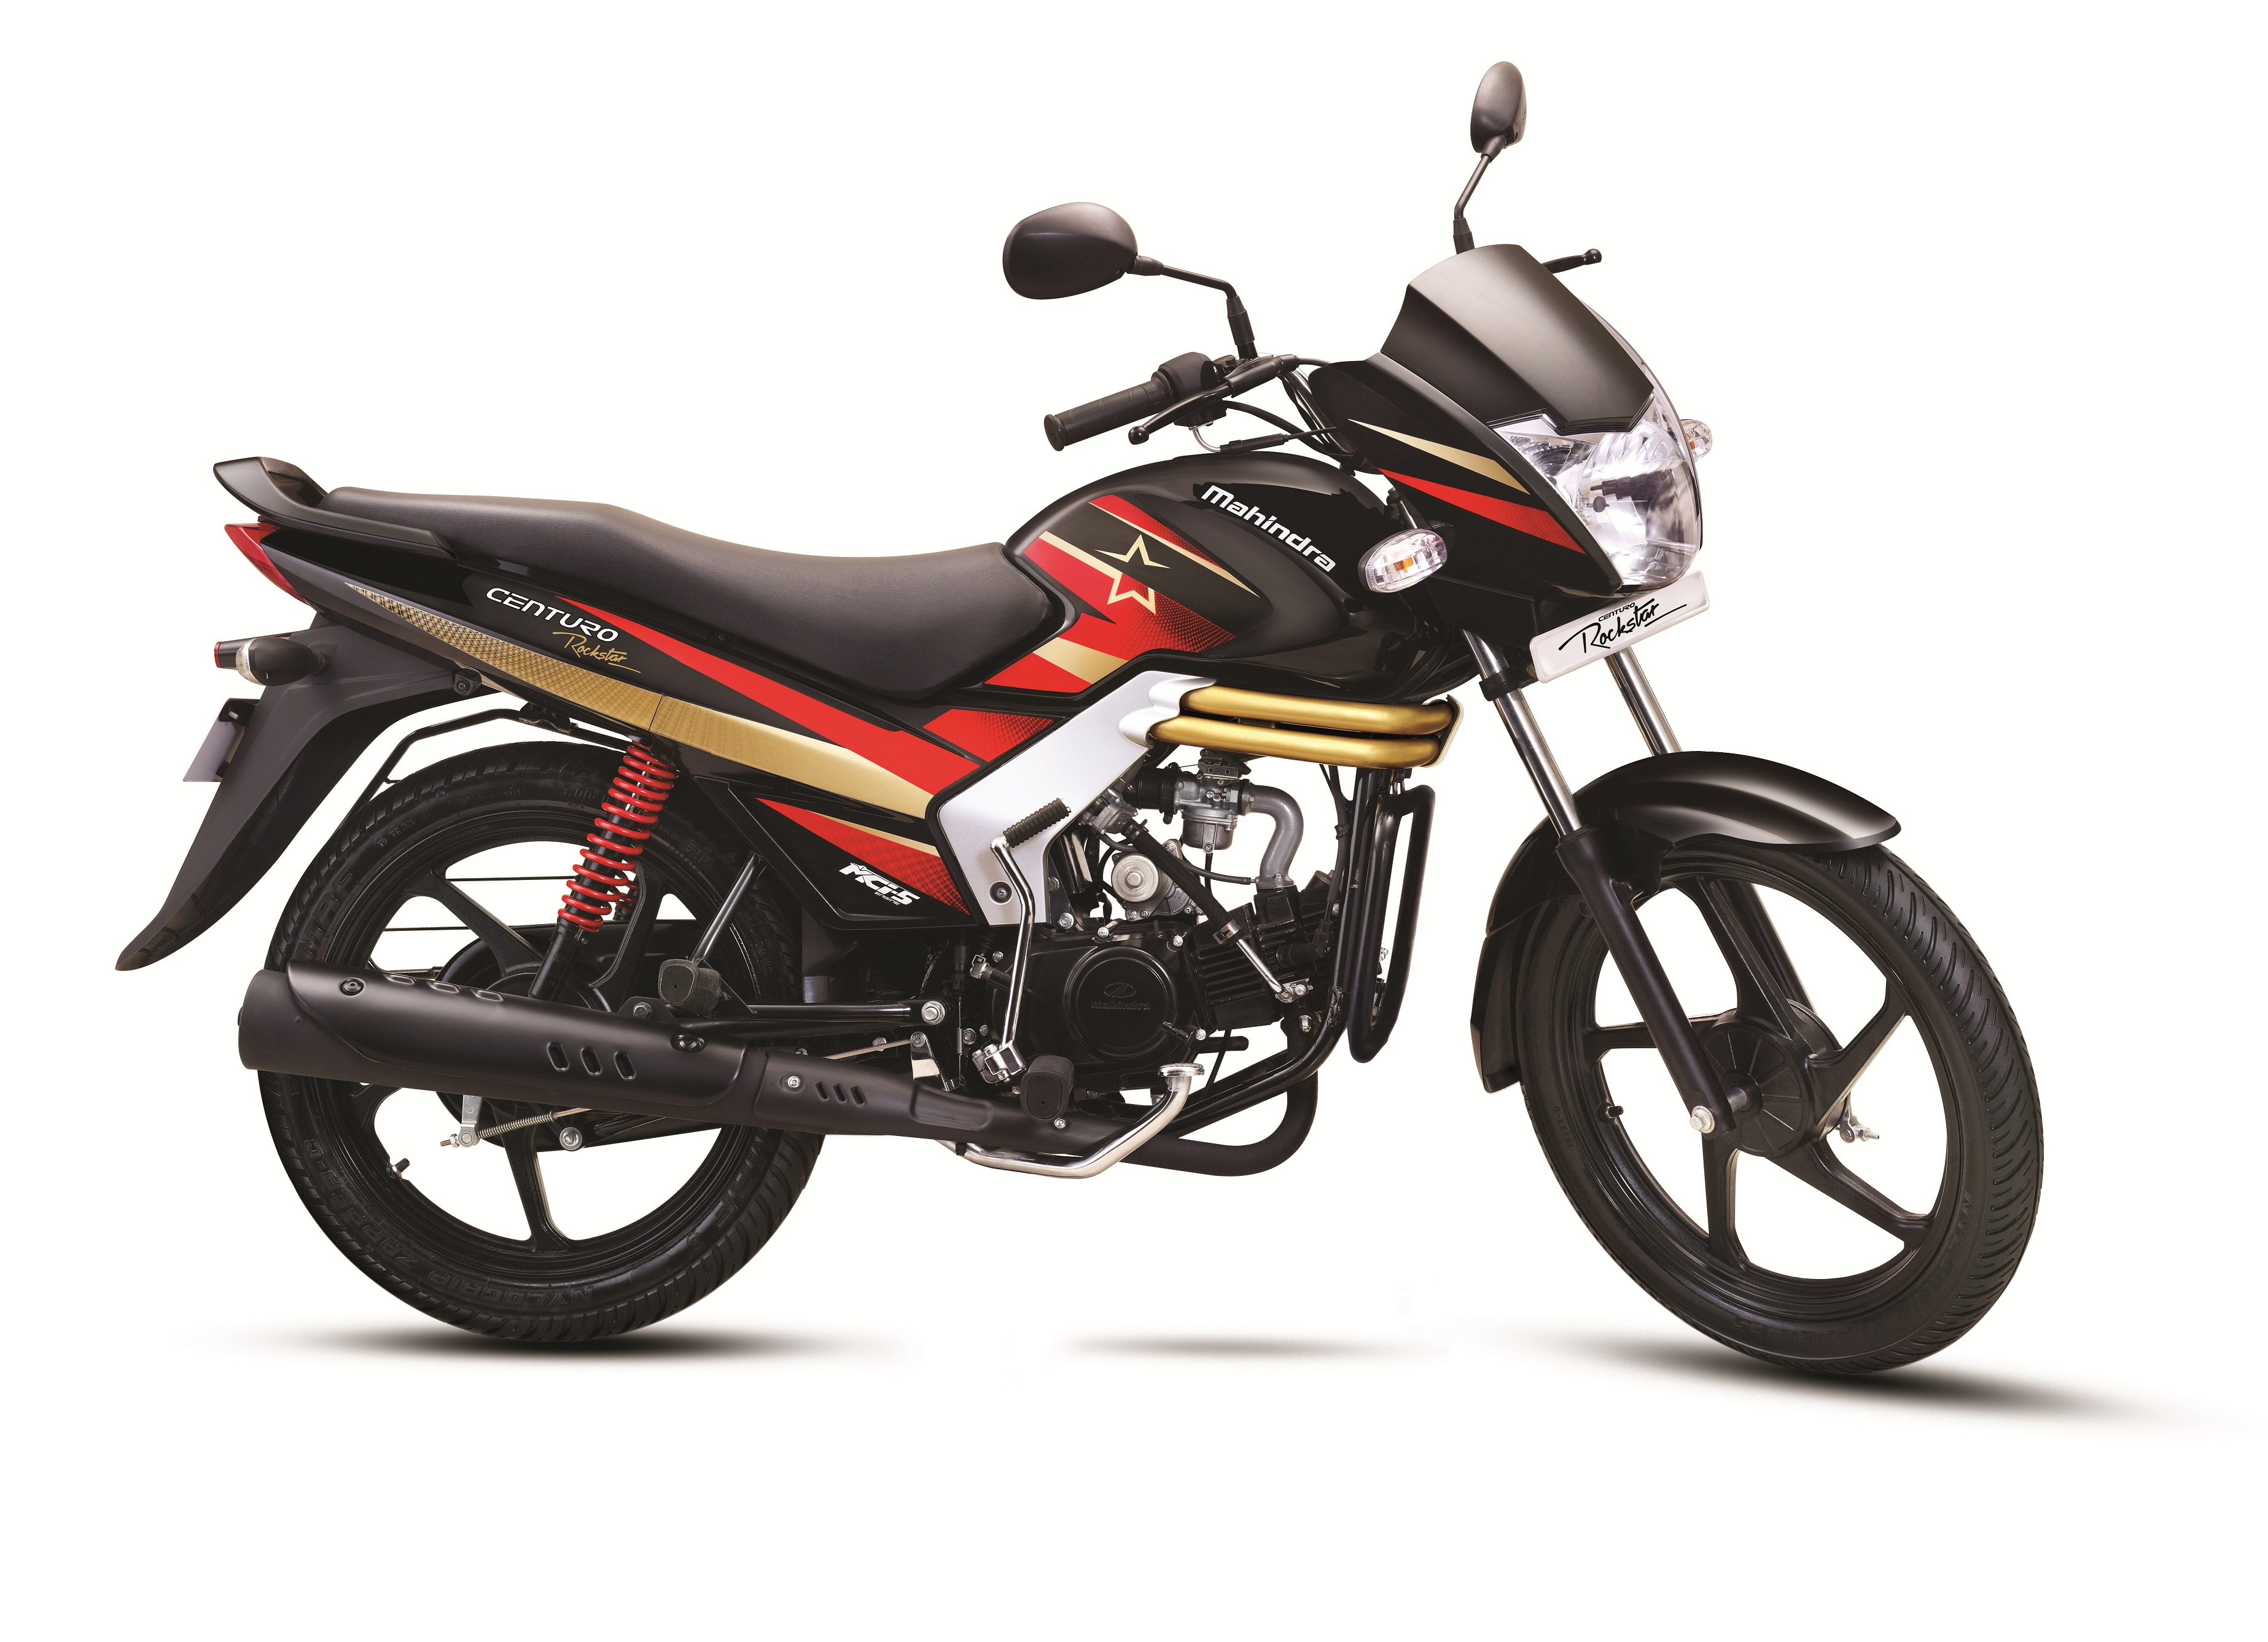 Mahindra Launches Centuro Rockstar At Rs 44,558